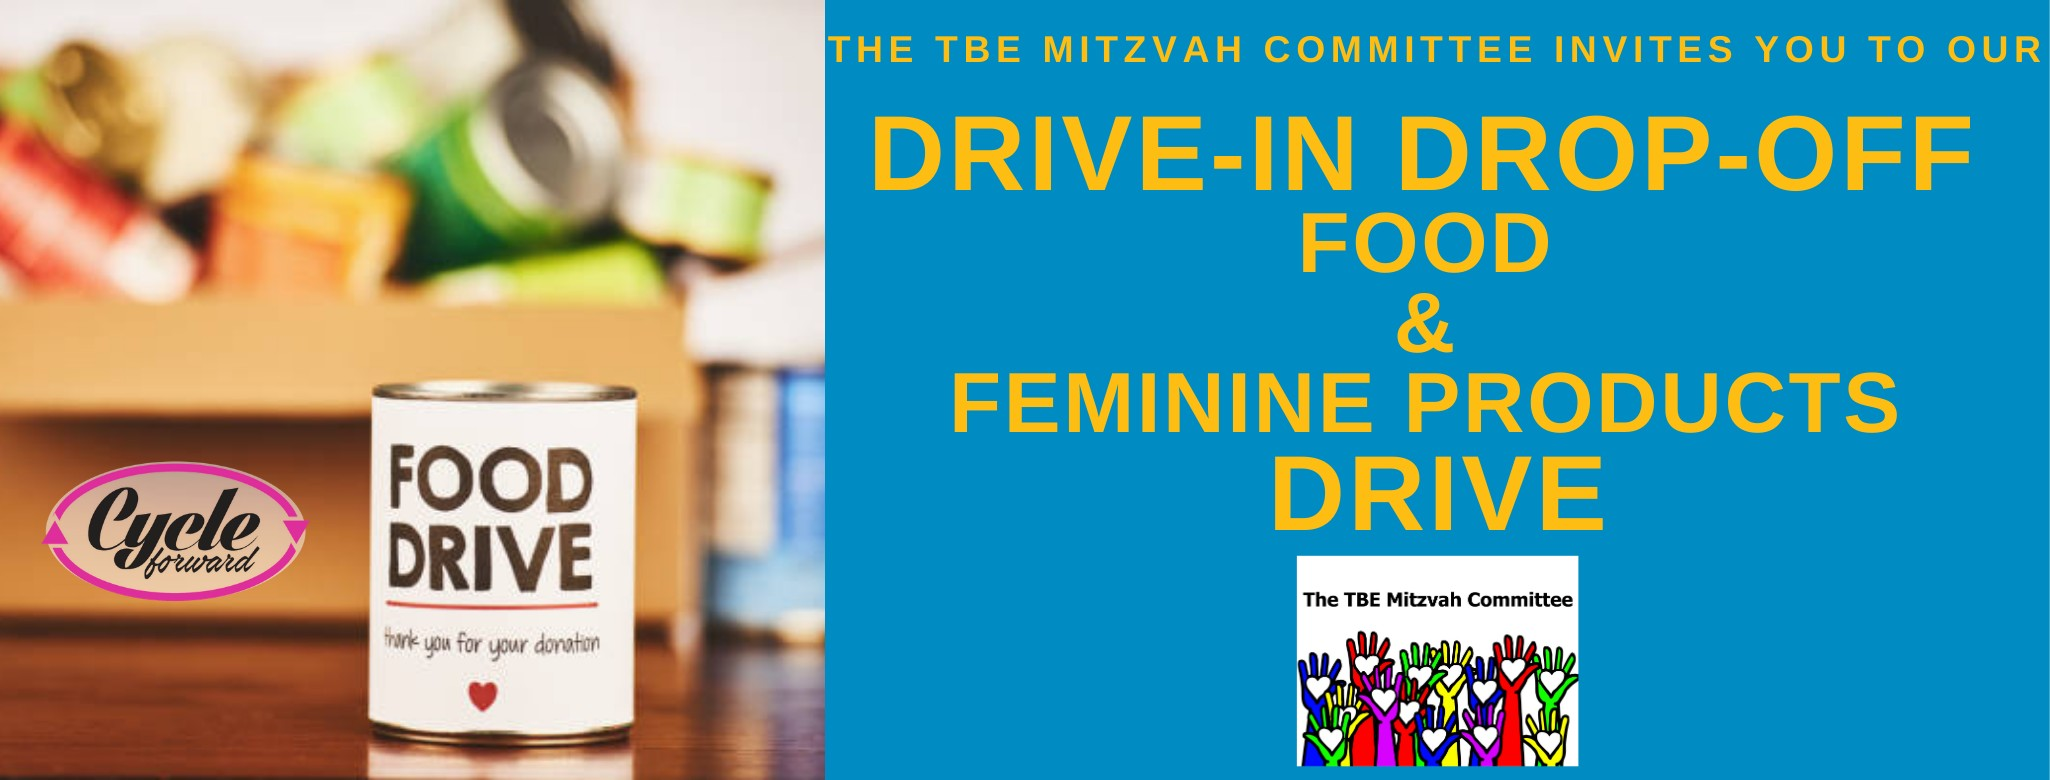 """<a href=""""https://www.templebethel.com/mitzvah-committee.html""""                                     target=""""_blank"""">                                                                 <span class=""""slider_title"""">                                     1st Tuesday of the month                                </span>                                                                 </a>                                                                                                                                                                                      <a href=""""https://www.templebethel.com/mitzvah-committee.html"""" class=""""slider_link""""                             target=""""_blank"""">                             More Information                            </a>"""